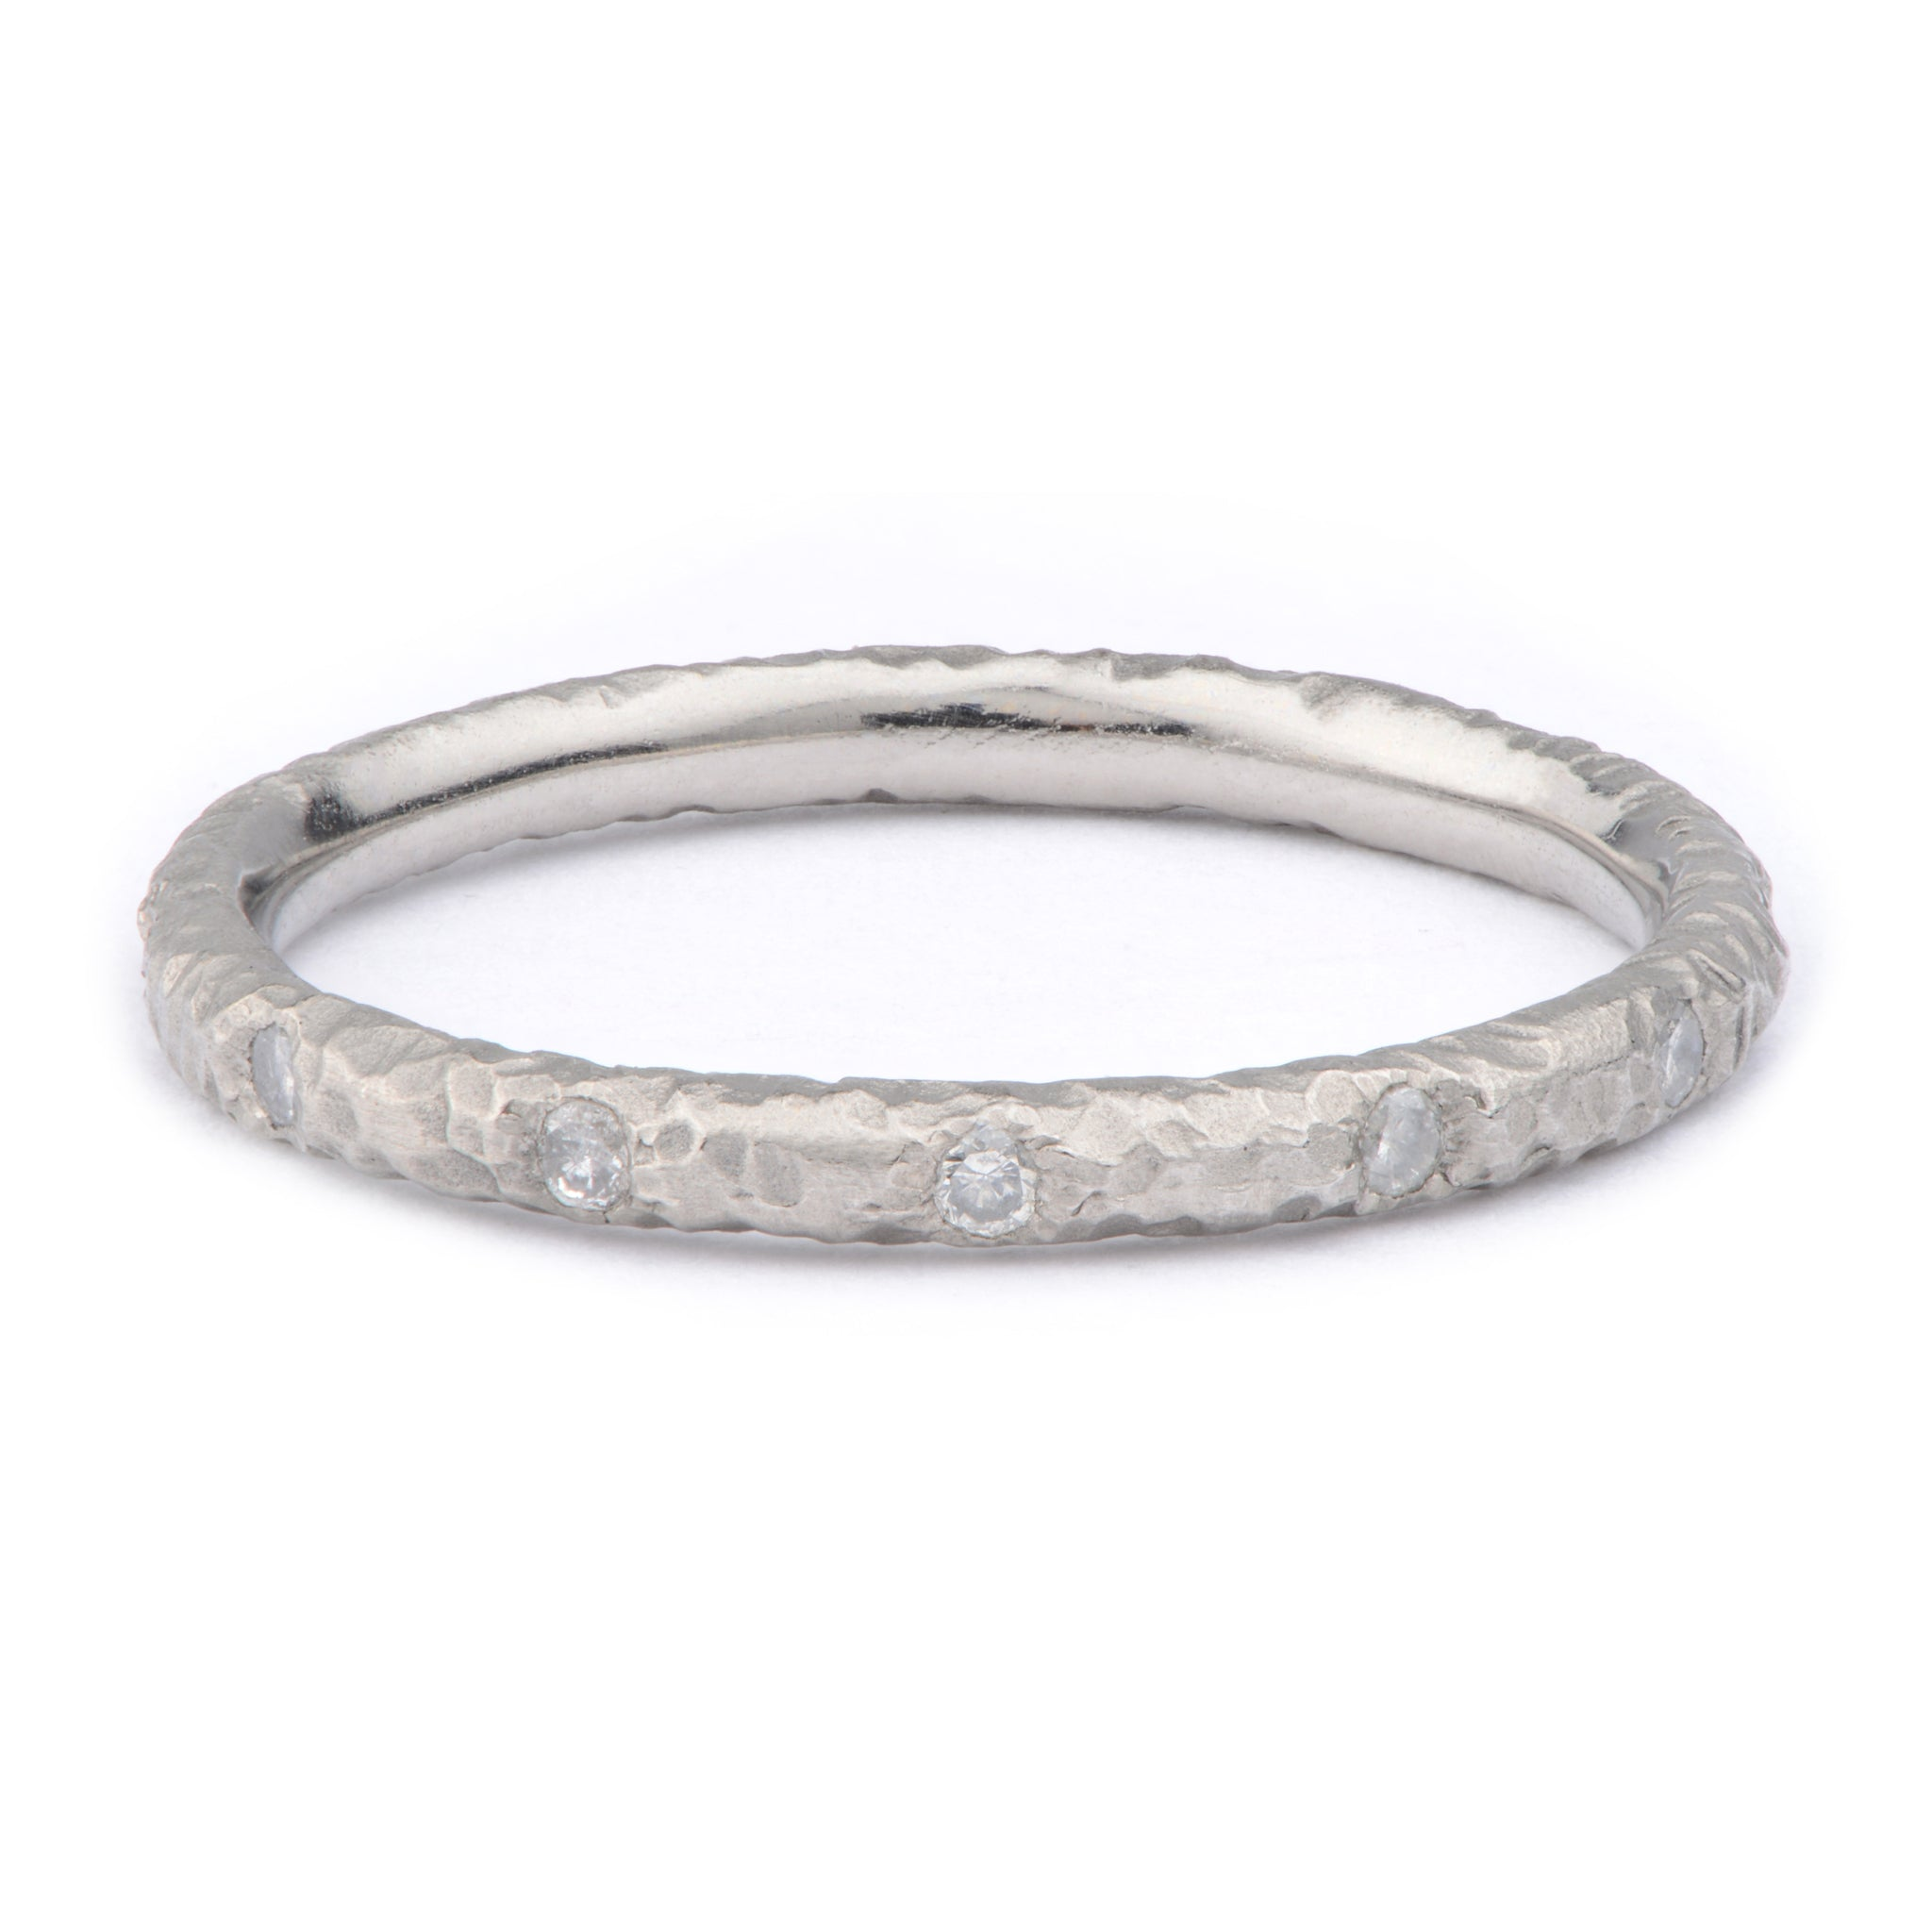 Palladium Flush Set Diamond Ring - James Newman Jewellery